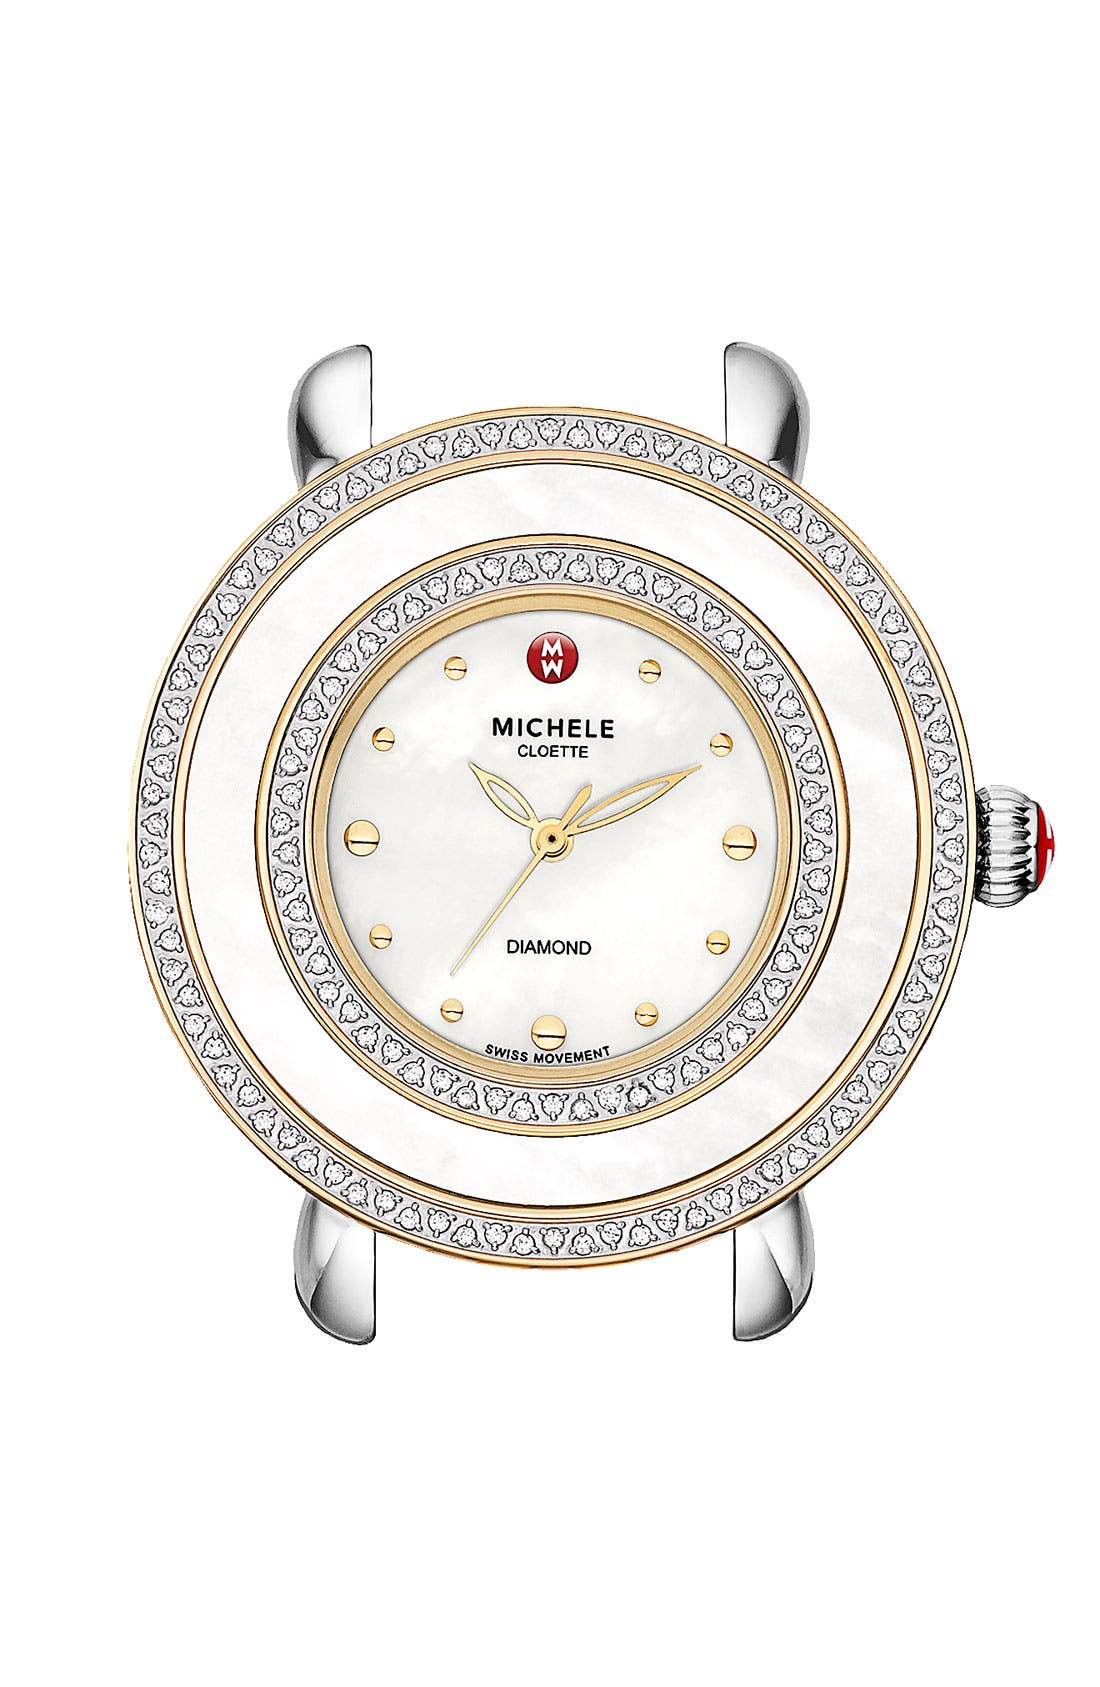 Alternate Image 1 Selected - MICHELE 'Cloette Diamond' Two Tone Watch Case